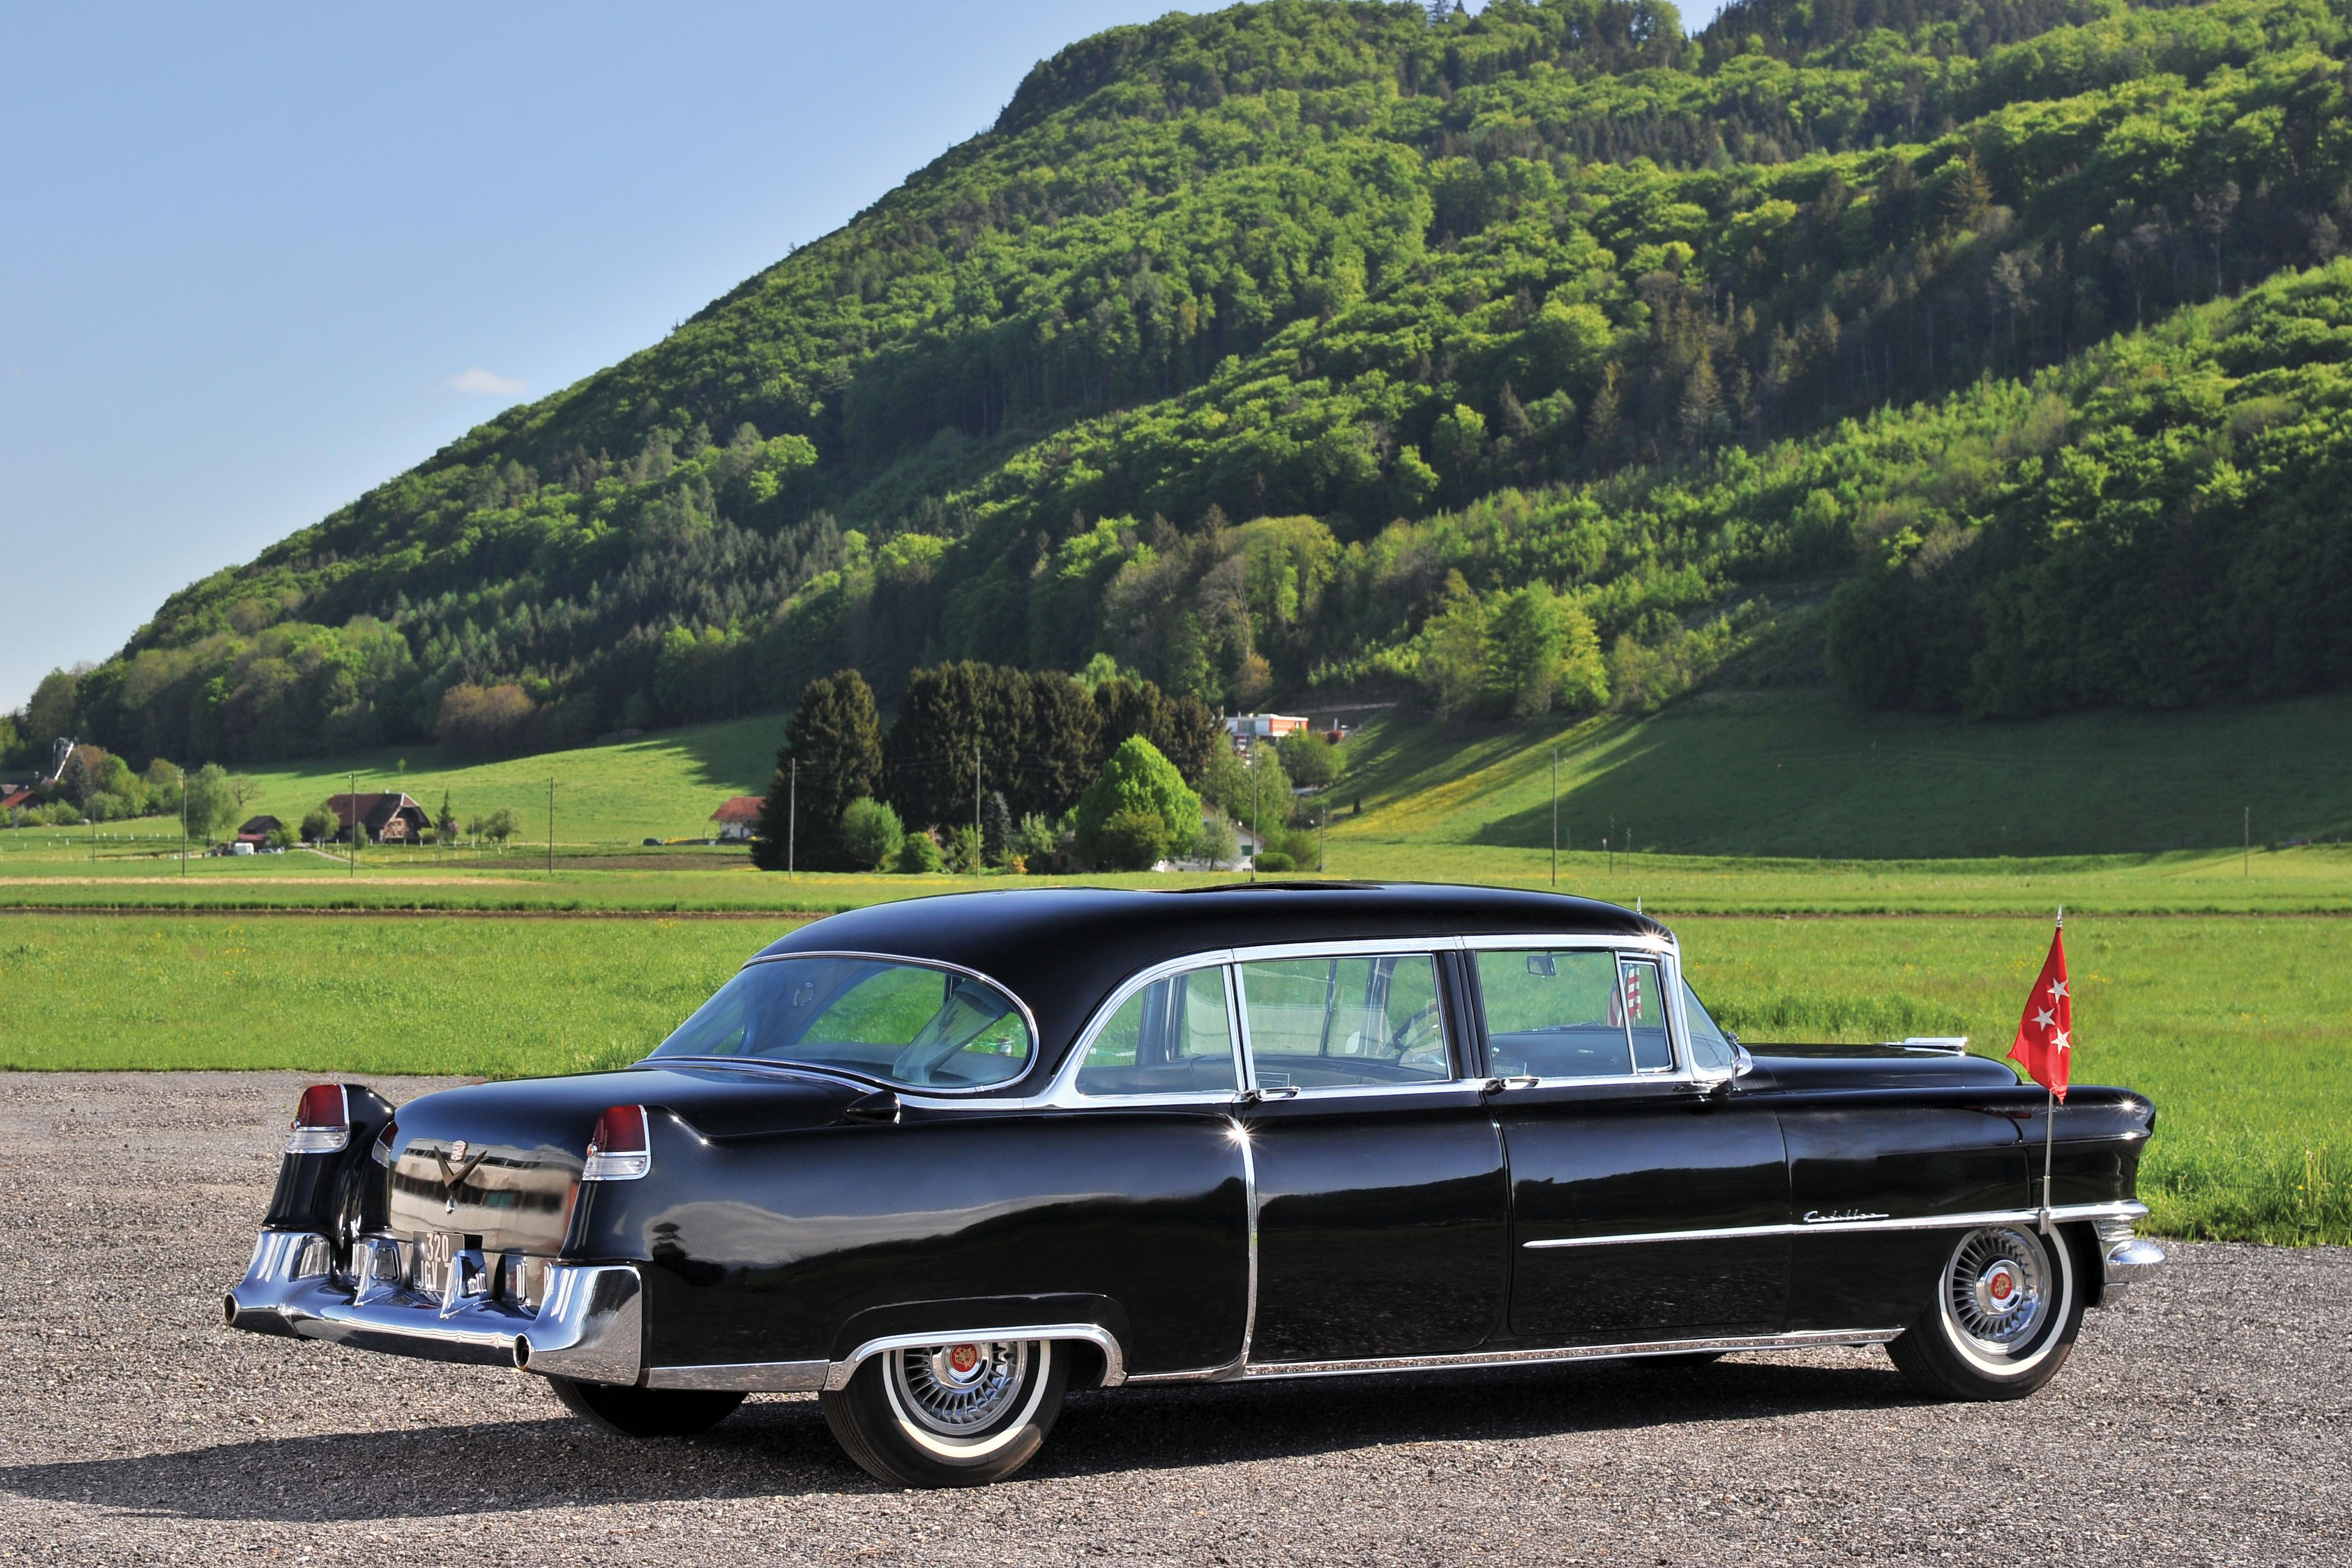 1955 Cadillac Fleetwood Seventy-Five Presidential Limousine by Hess ...